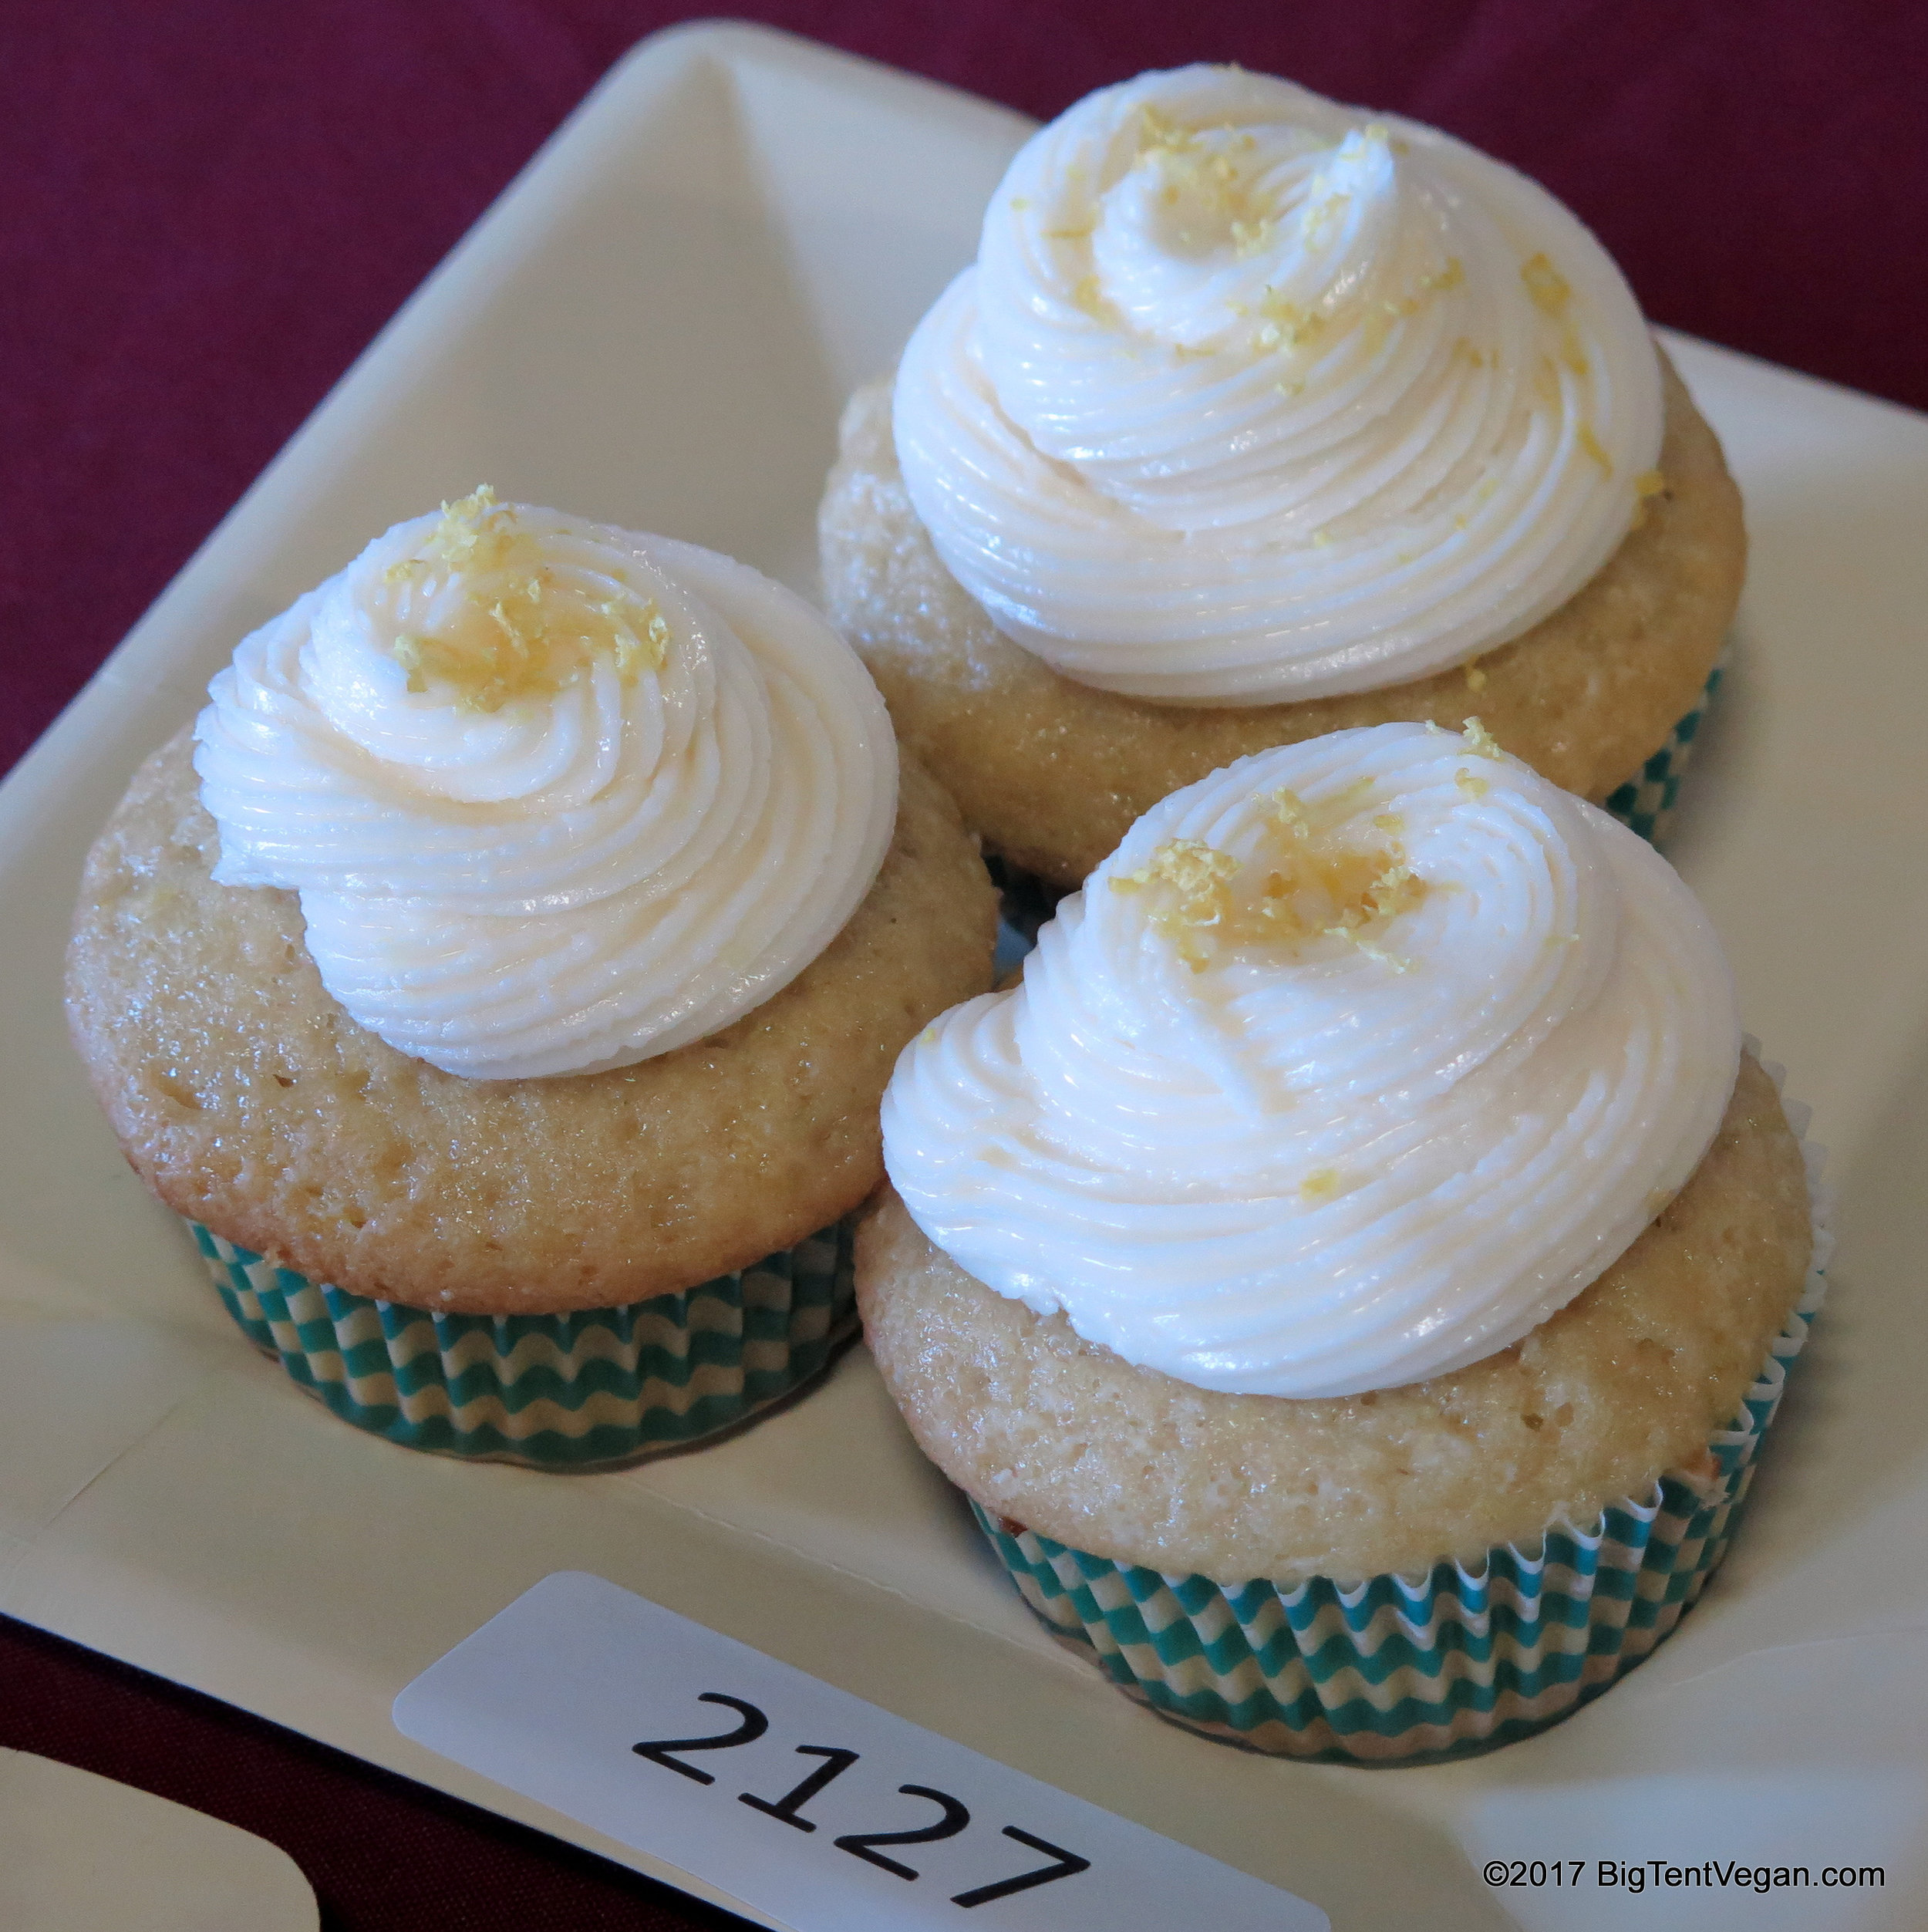 3rd PLACE: ADIJA RAINTREE     TRIPLE LEMON DELIGHT CUPCAKES